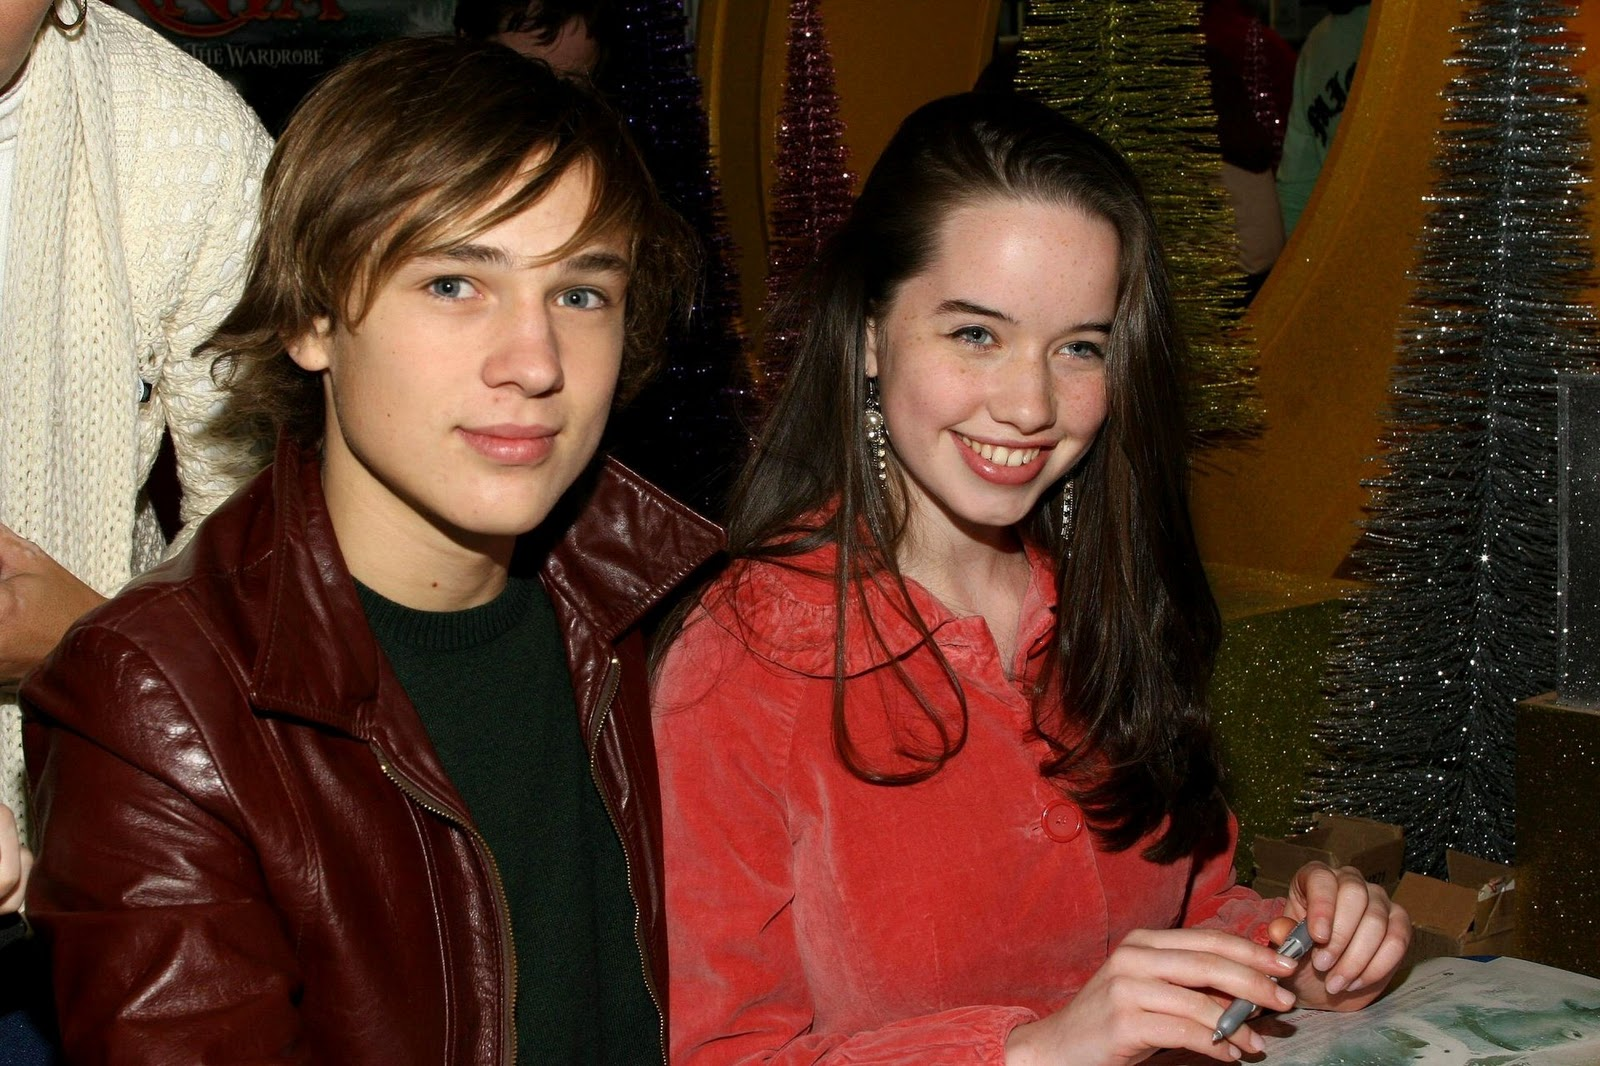 http://4.bp.blogspot.com/_jLks4YrQ748/TN07TtZqivI/AAAAAAAAAB0/MlKPTHzume4/s1600/Anna-Poppewell-and-William-Moseley-anna-popplewell-1266509_1920_1279.jpg